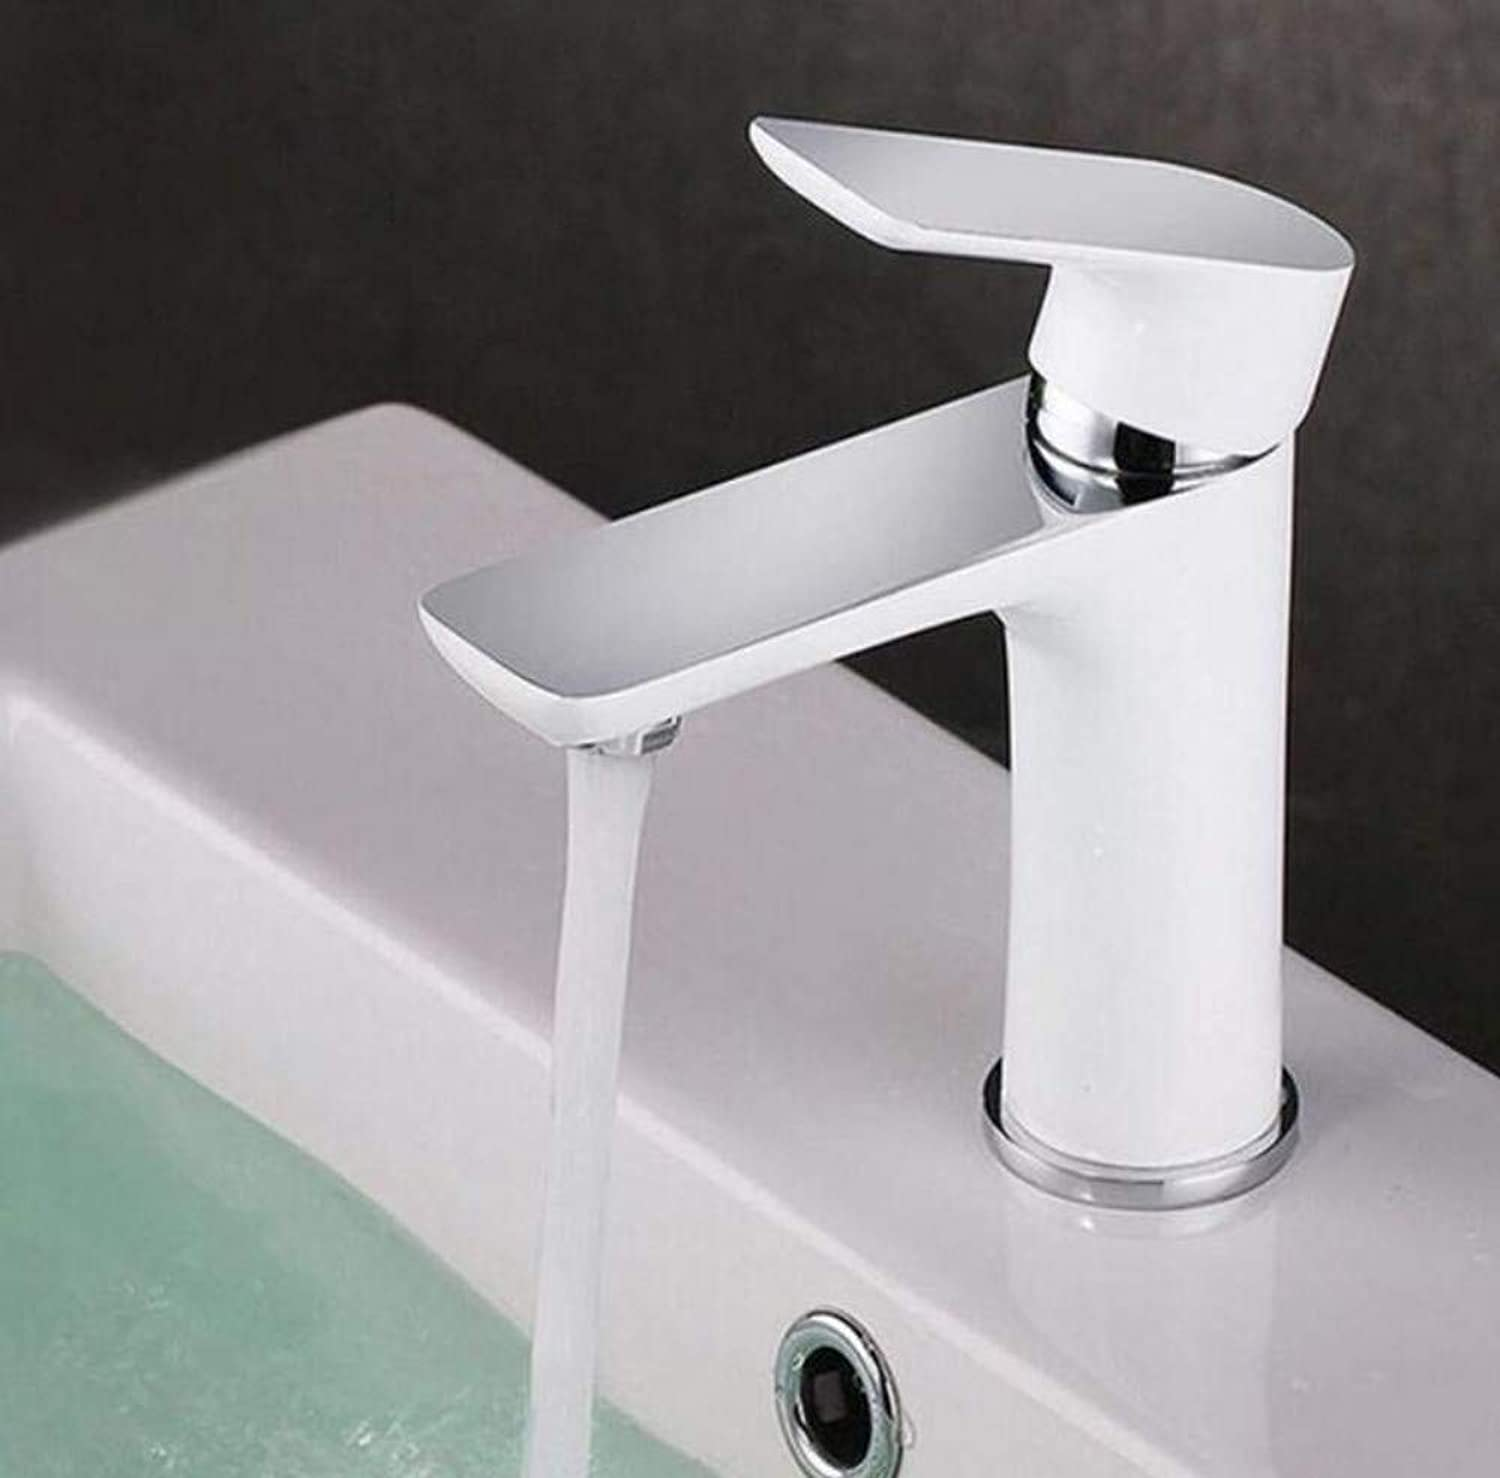 Brass Wall Faucet Chrome Brass Faucetfaucet Surface Chrome Plated & White Paint Basin Mixer Water Tap